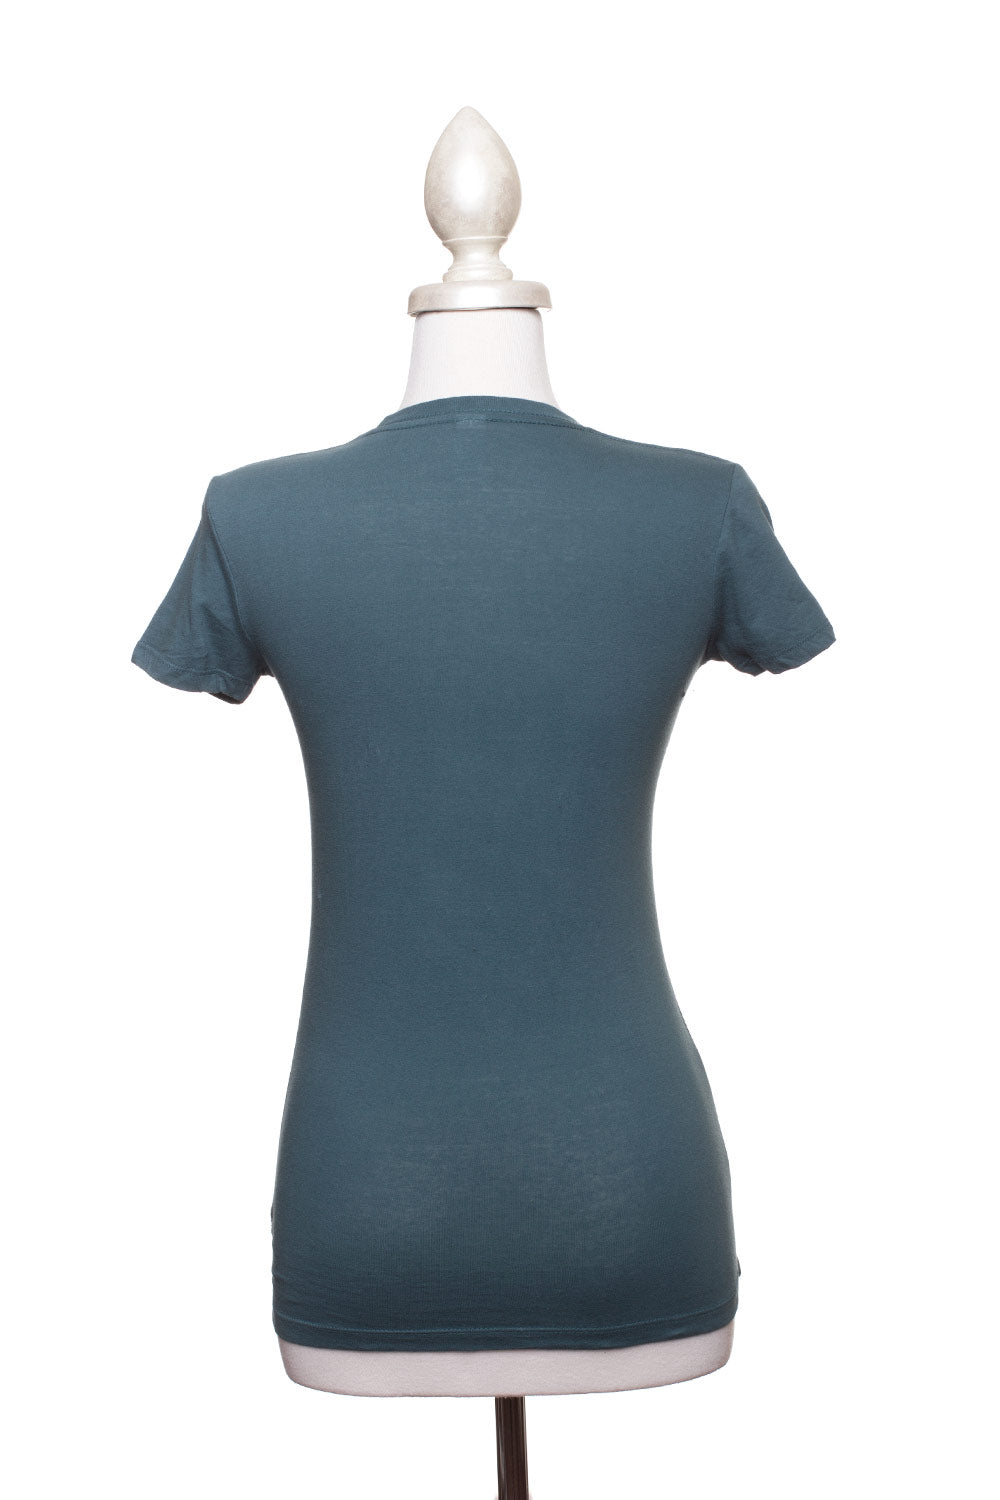 Type 2 Teal Soft-T